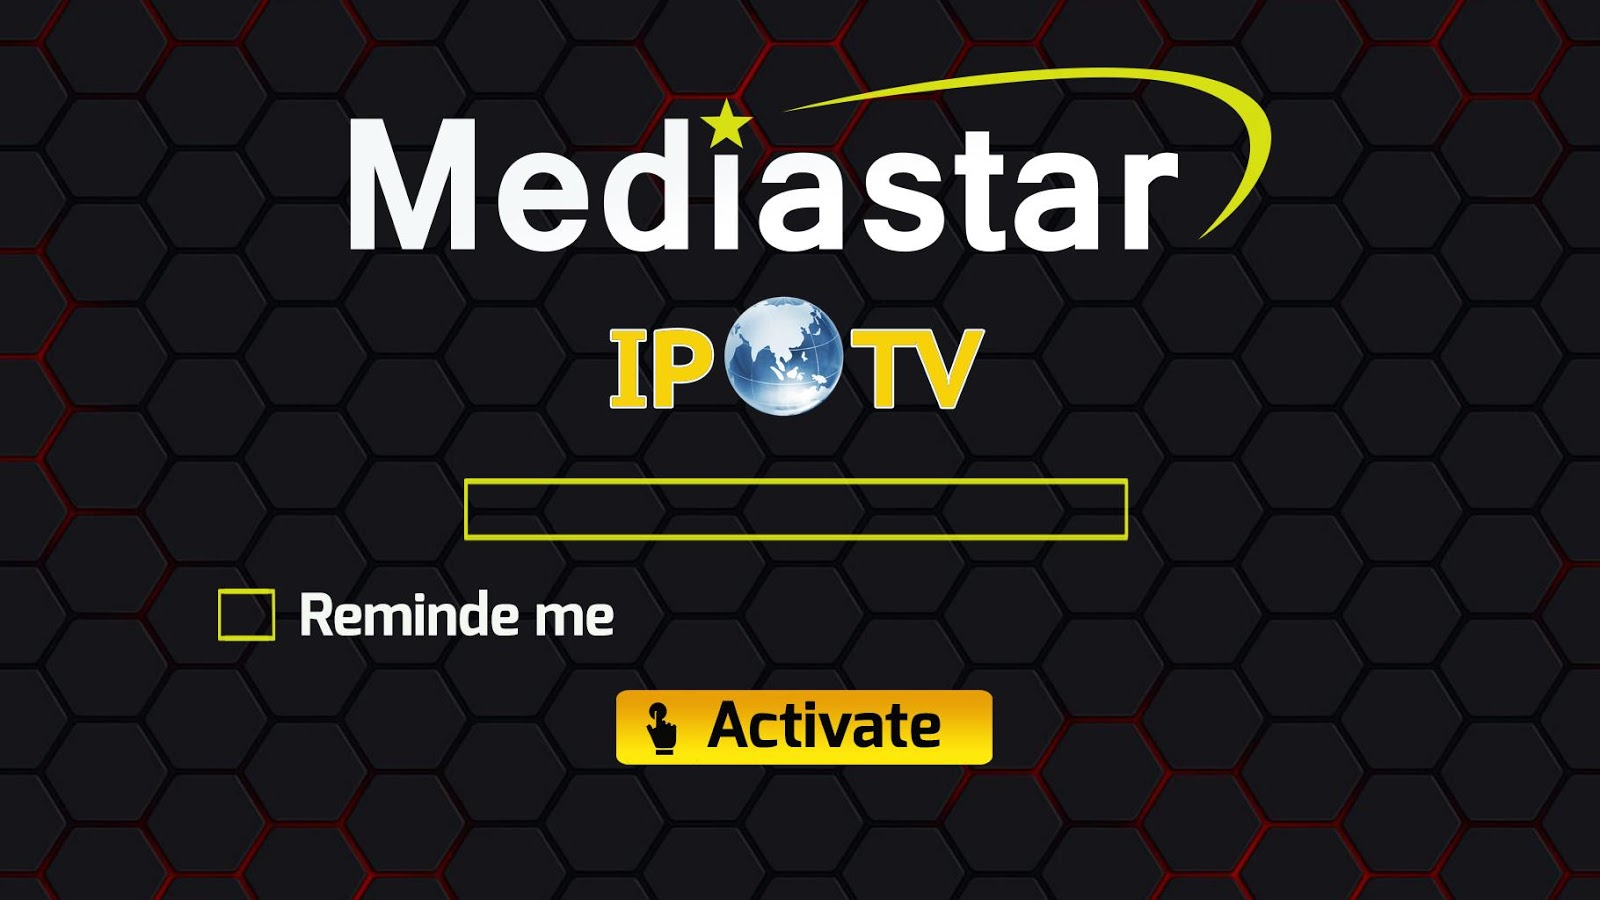 Mediastar-IPTV Pro 1 7 APK Download - Android Media & Video Apps